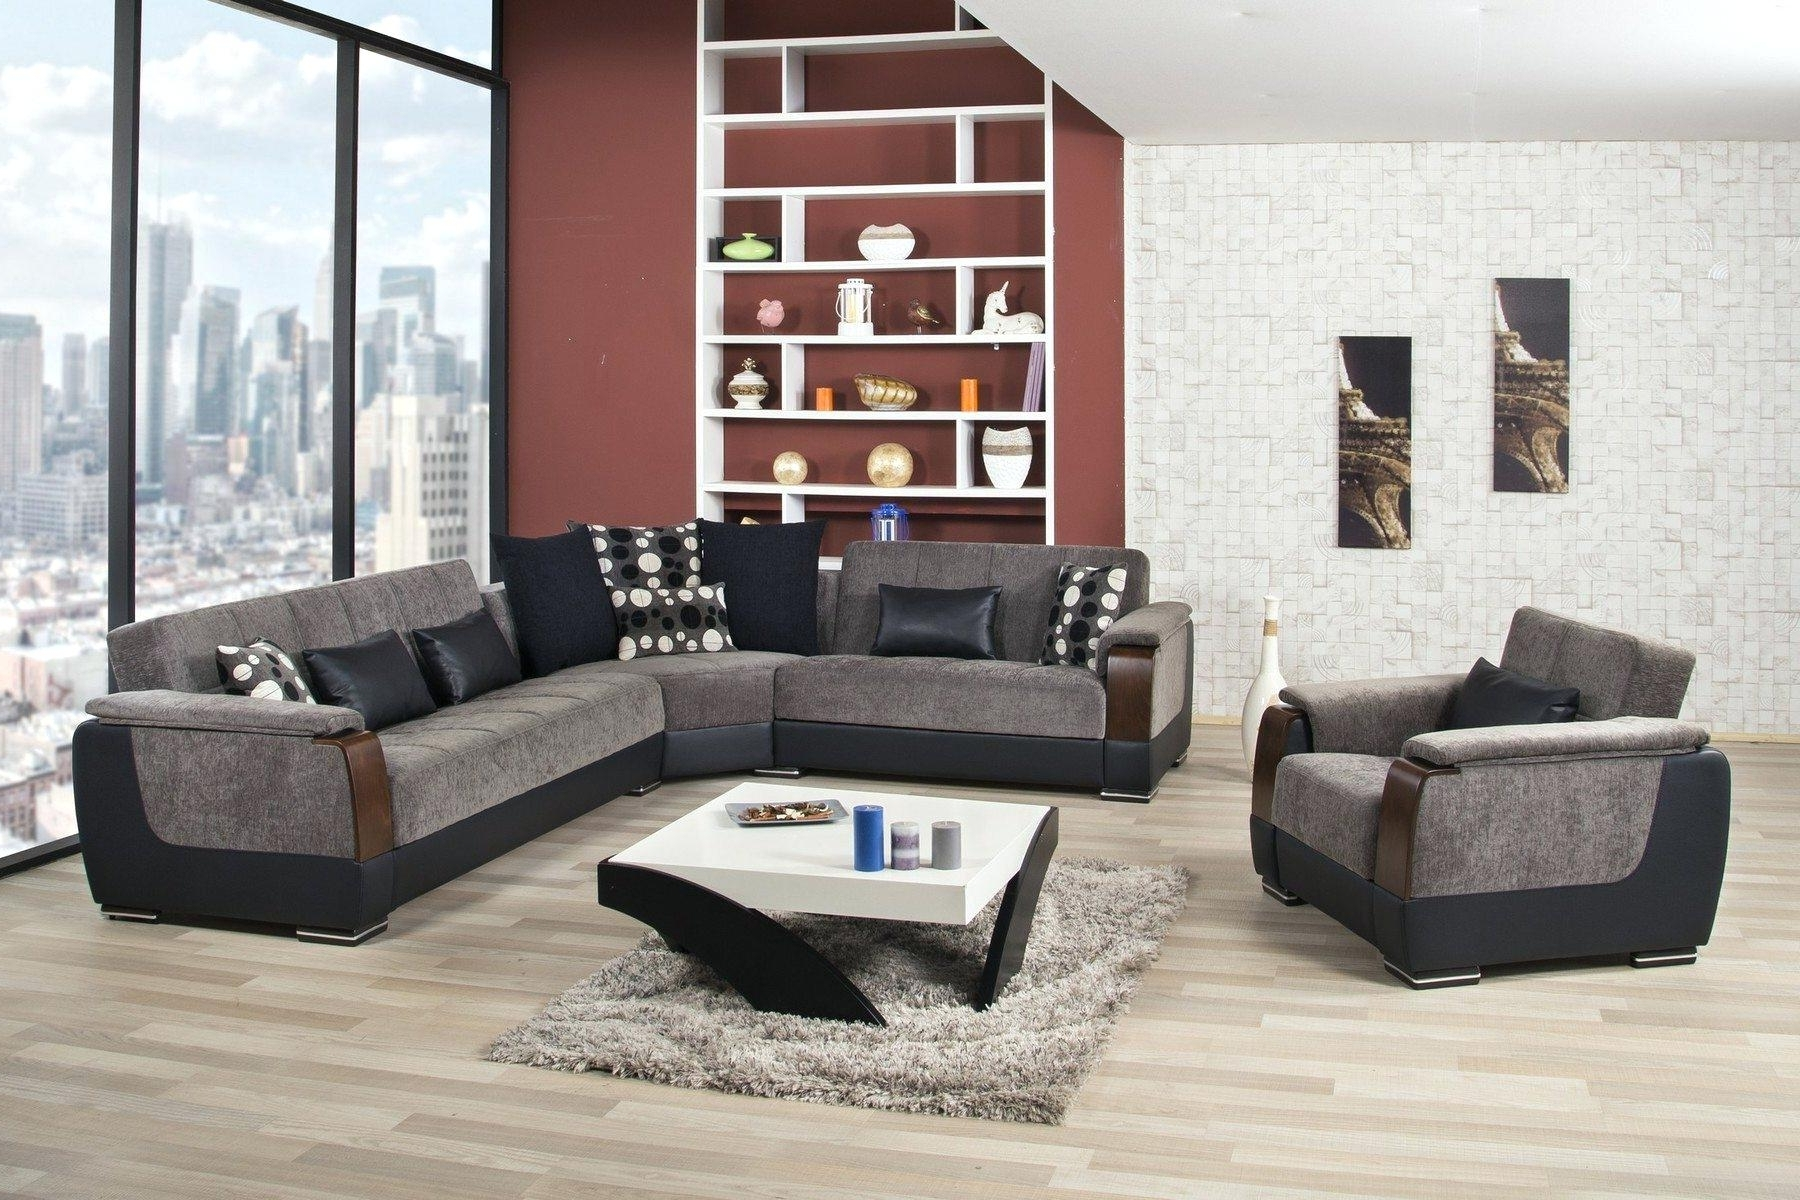 2017 Becker Furniture World Mn Locations Magnolia Farms In Dining Home In St Cloud Mn Sectional Sofas (View 1 of 15)